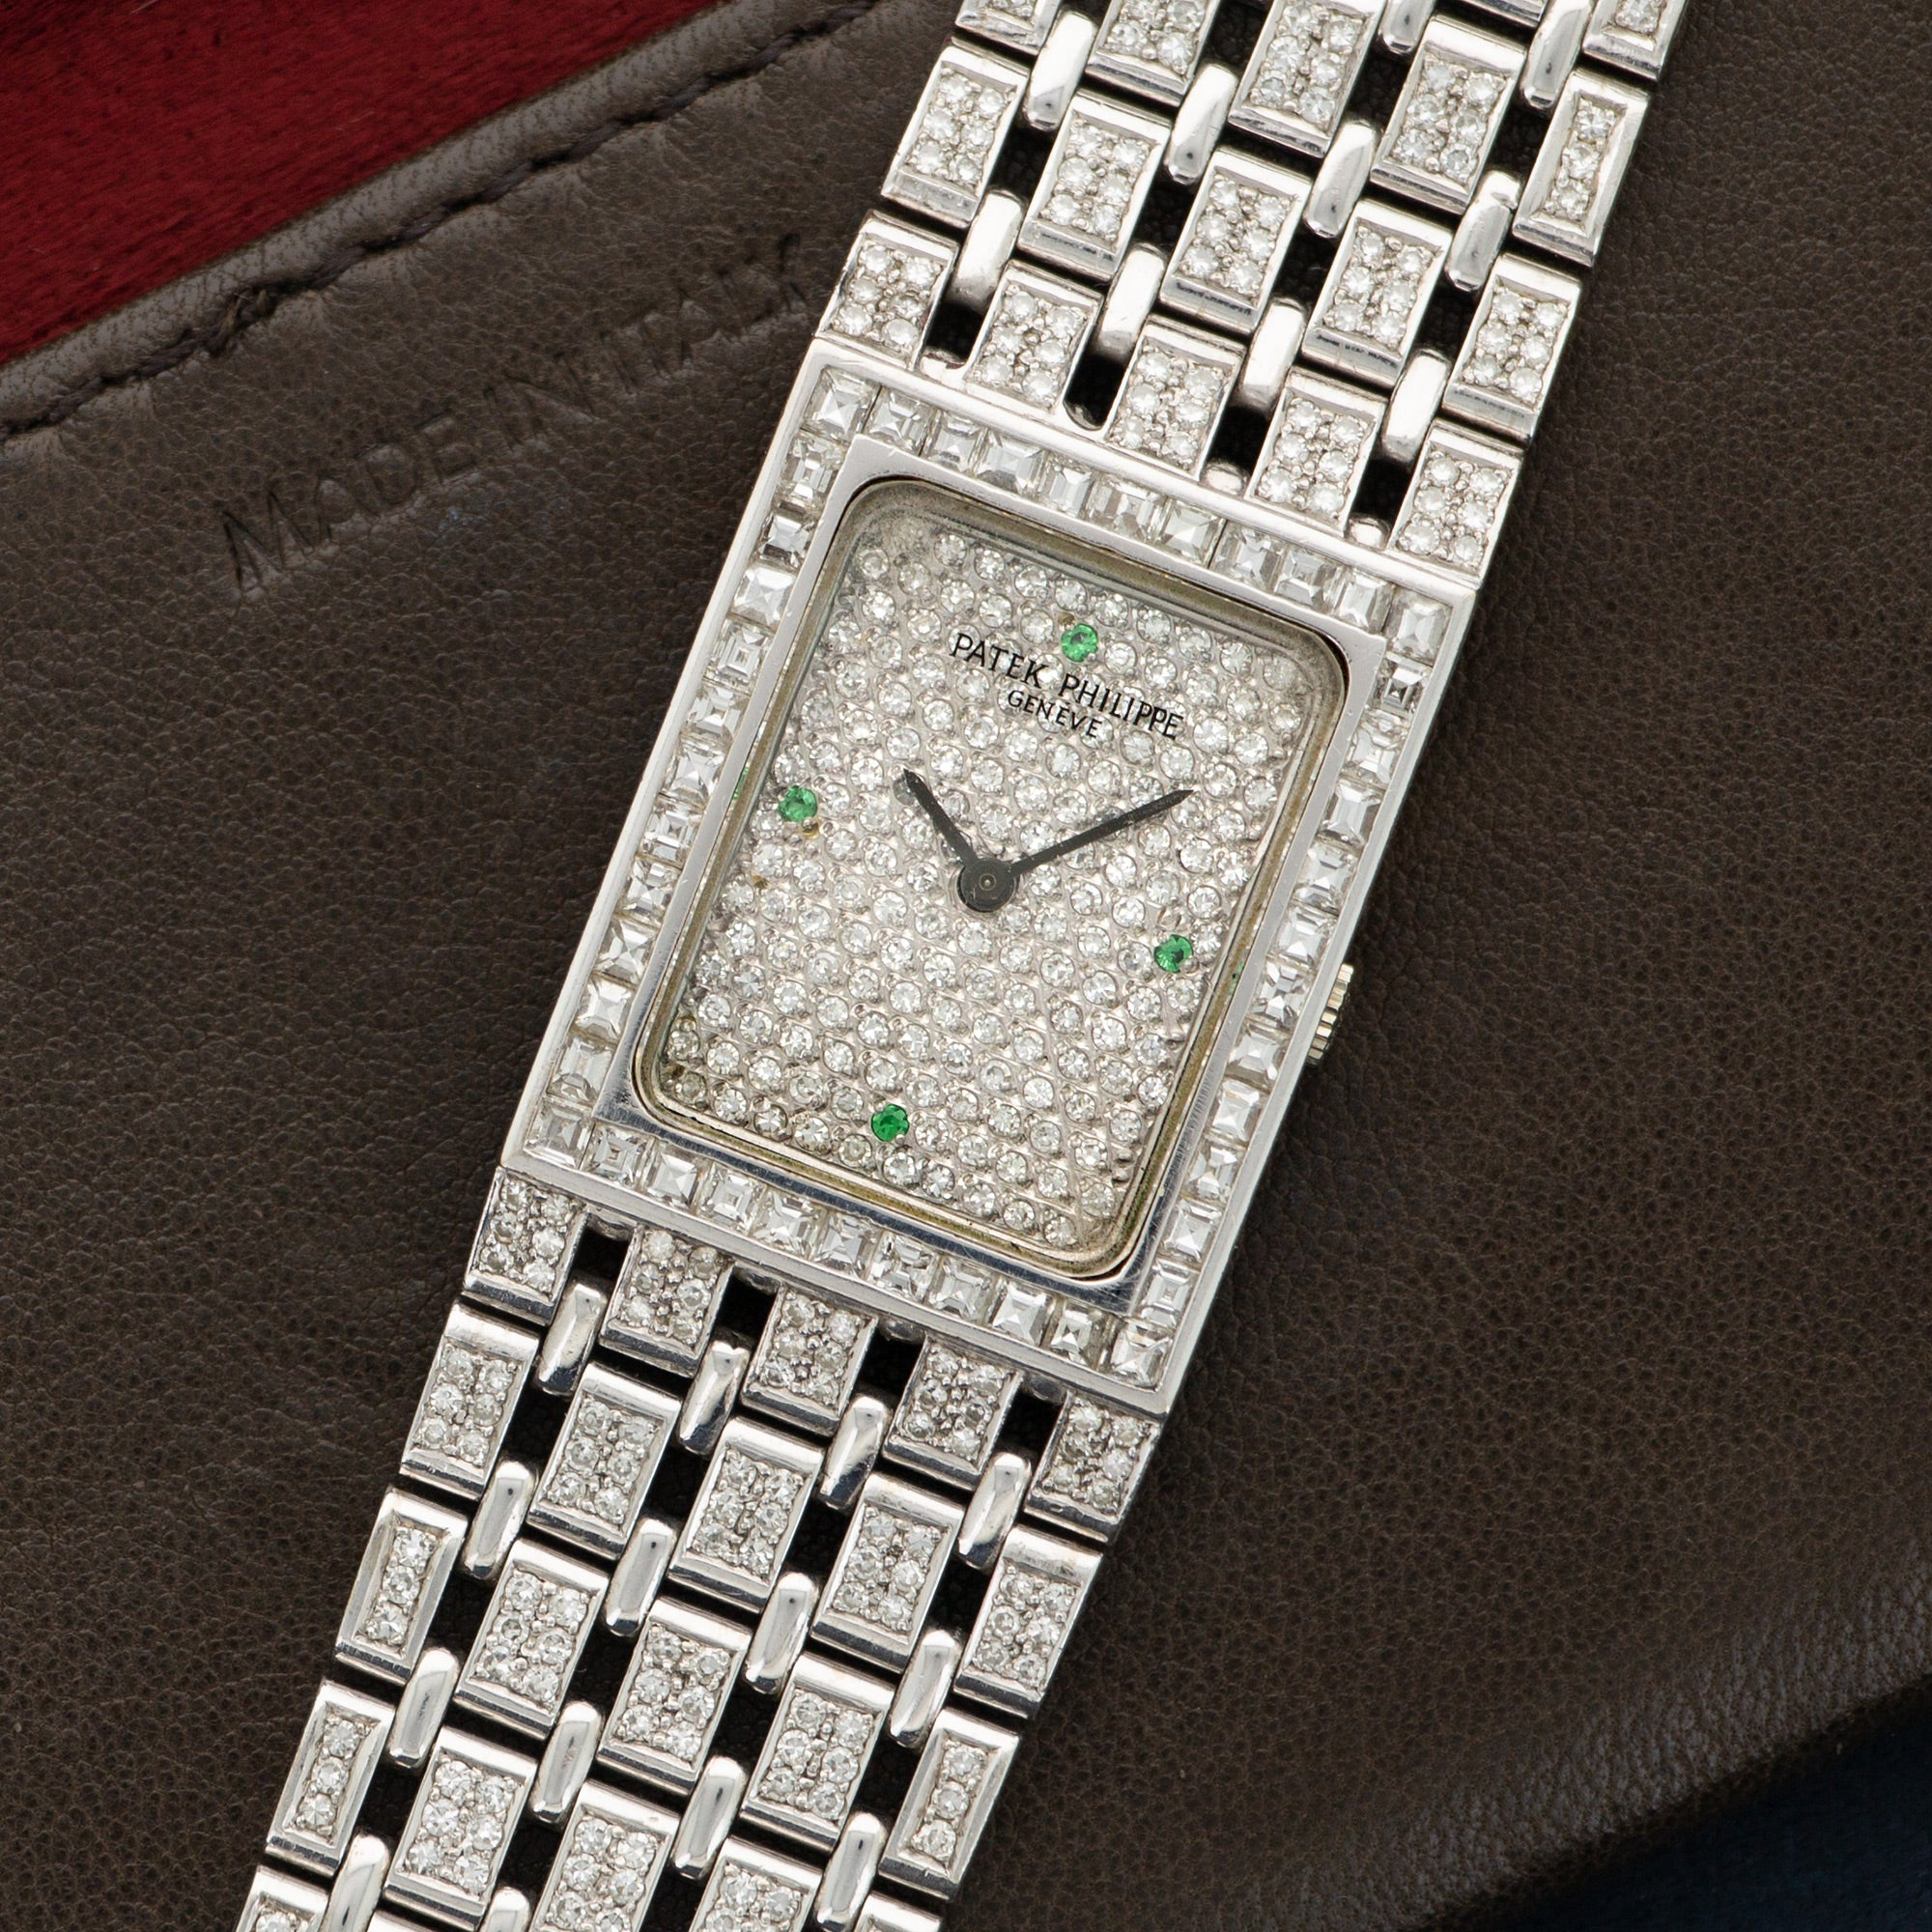 Patek Philippe Vintage N/A 18k WG  Excellent Unisex 18k WG Custom Pave Diamond with Emerald Markers 23 X 28mm Manual 1970s White Gold Bracelet with Custom Diamonds (180mm) Leather Travel Case